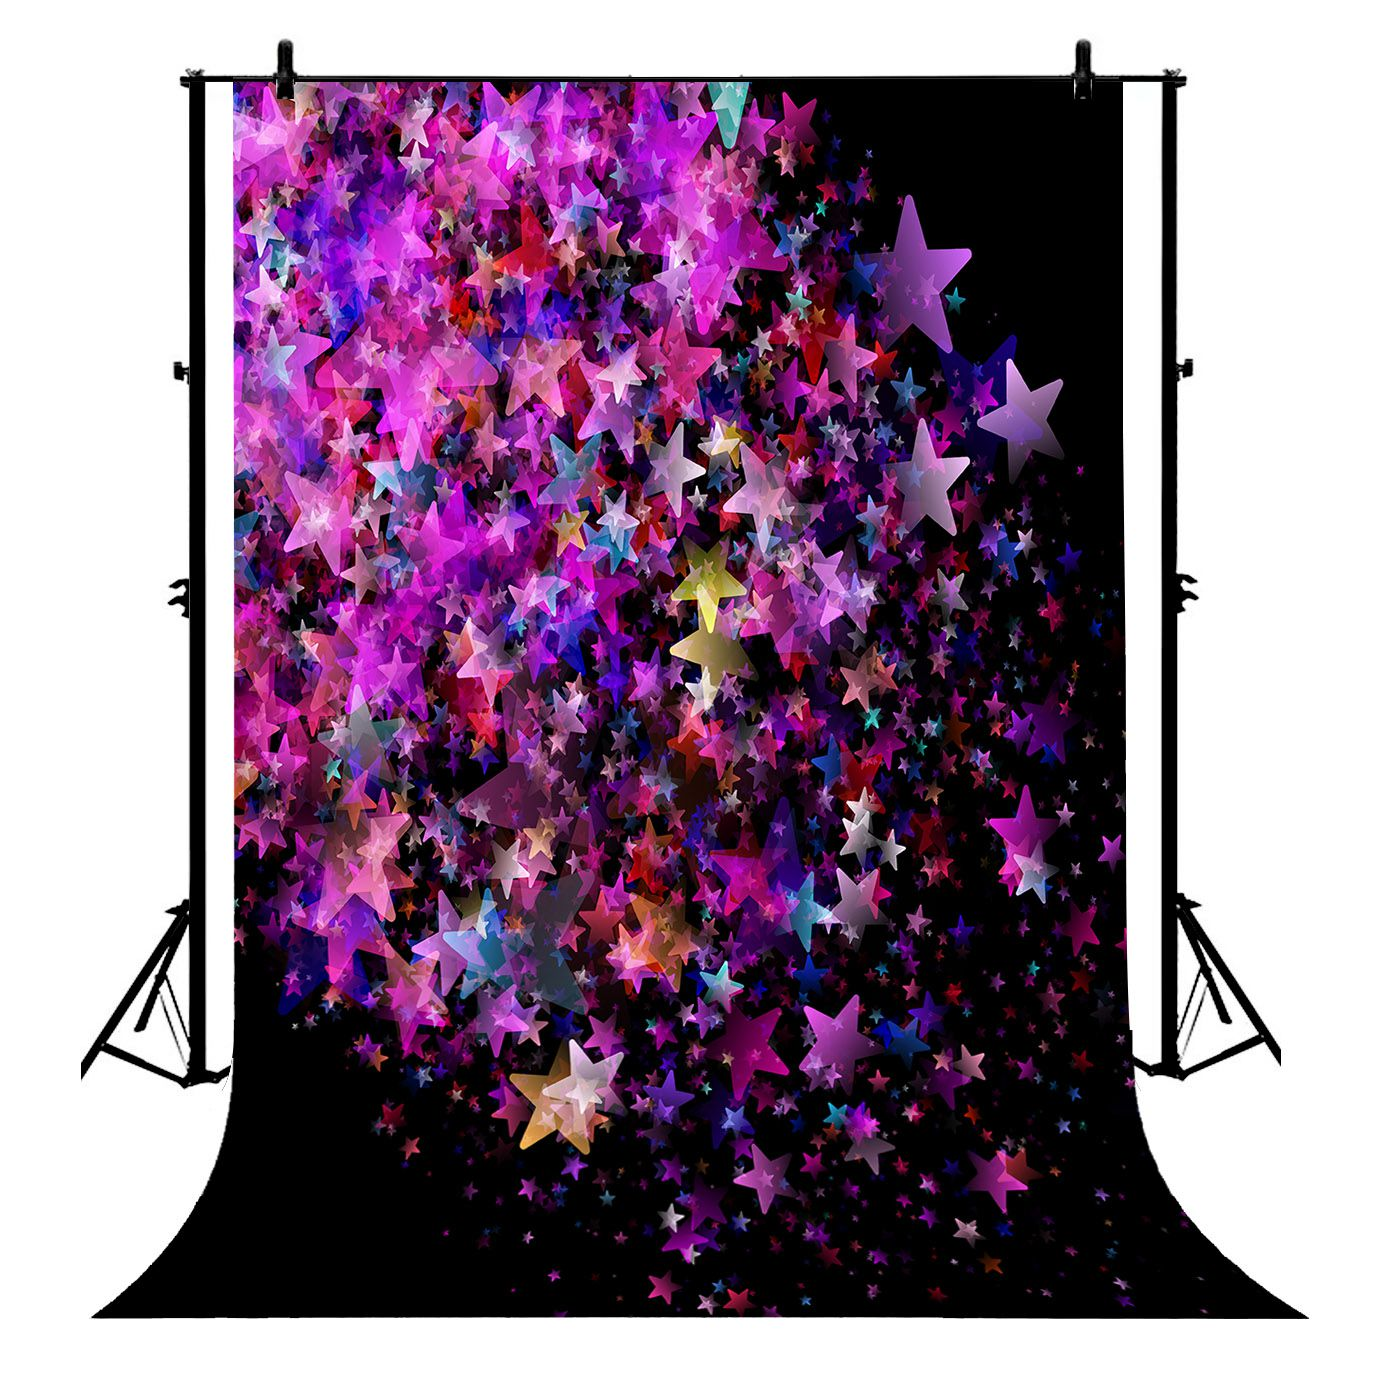 GCKG 7x5ft Colorful Star Twinkling Stars Polyester Photography Backdrop Photo Background Studio Props - image 4 of 4